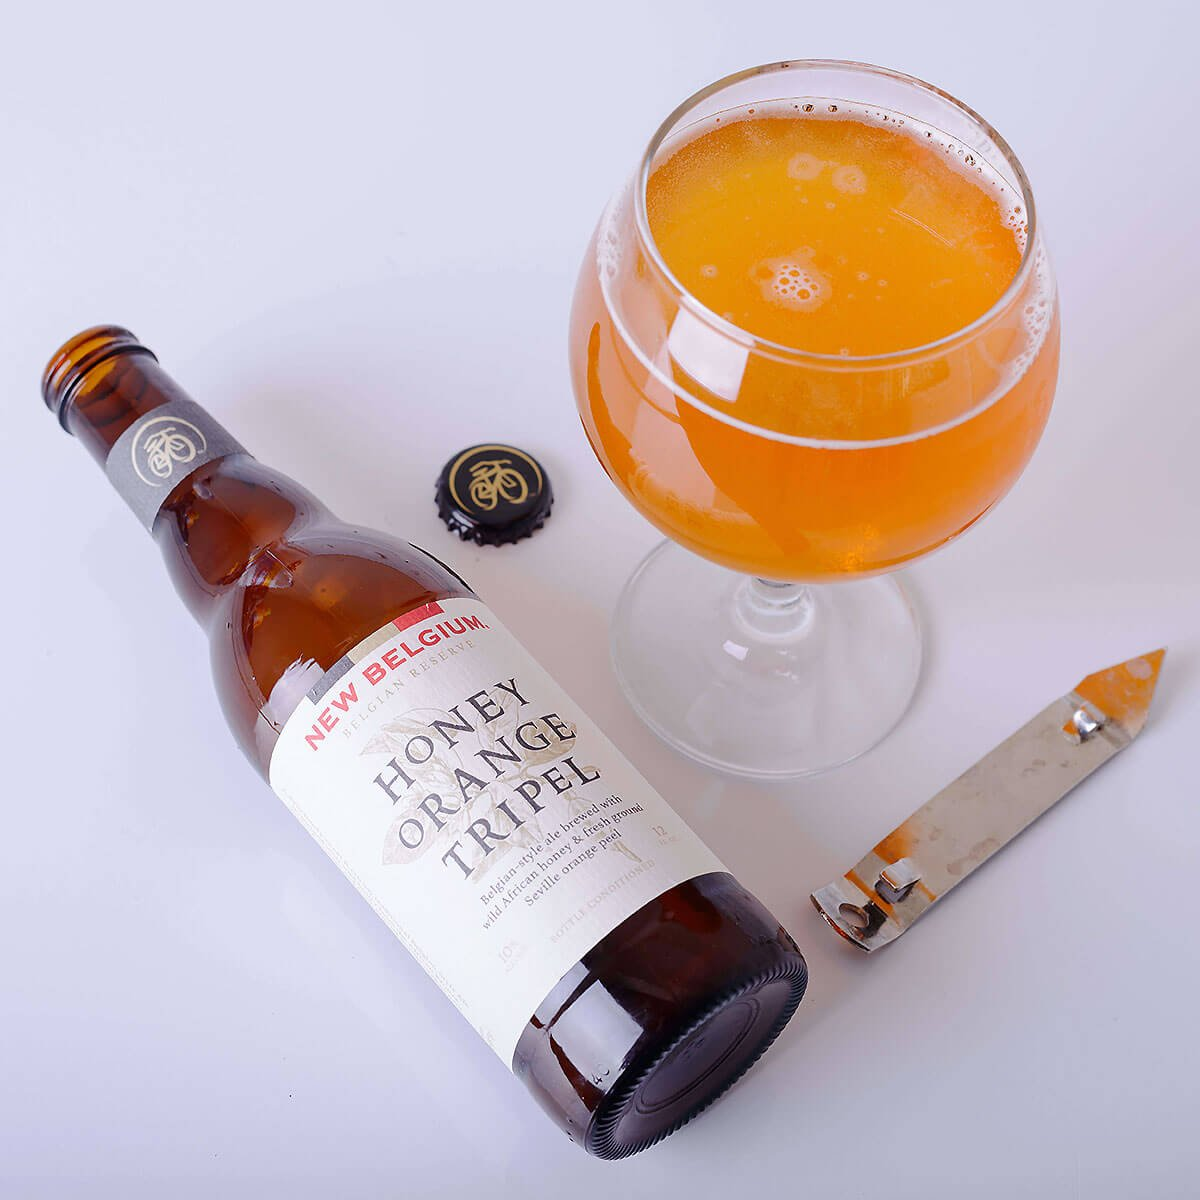 Honey Orange Tripel is a Belgian-style Tripel by New Belgium Brewing Company that blends sweet candied orange and honey with a light citrus and spices.